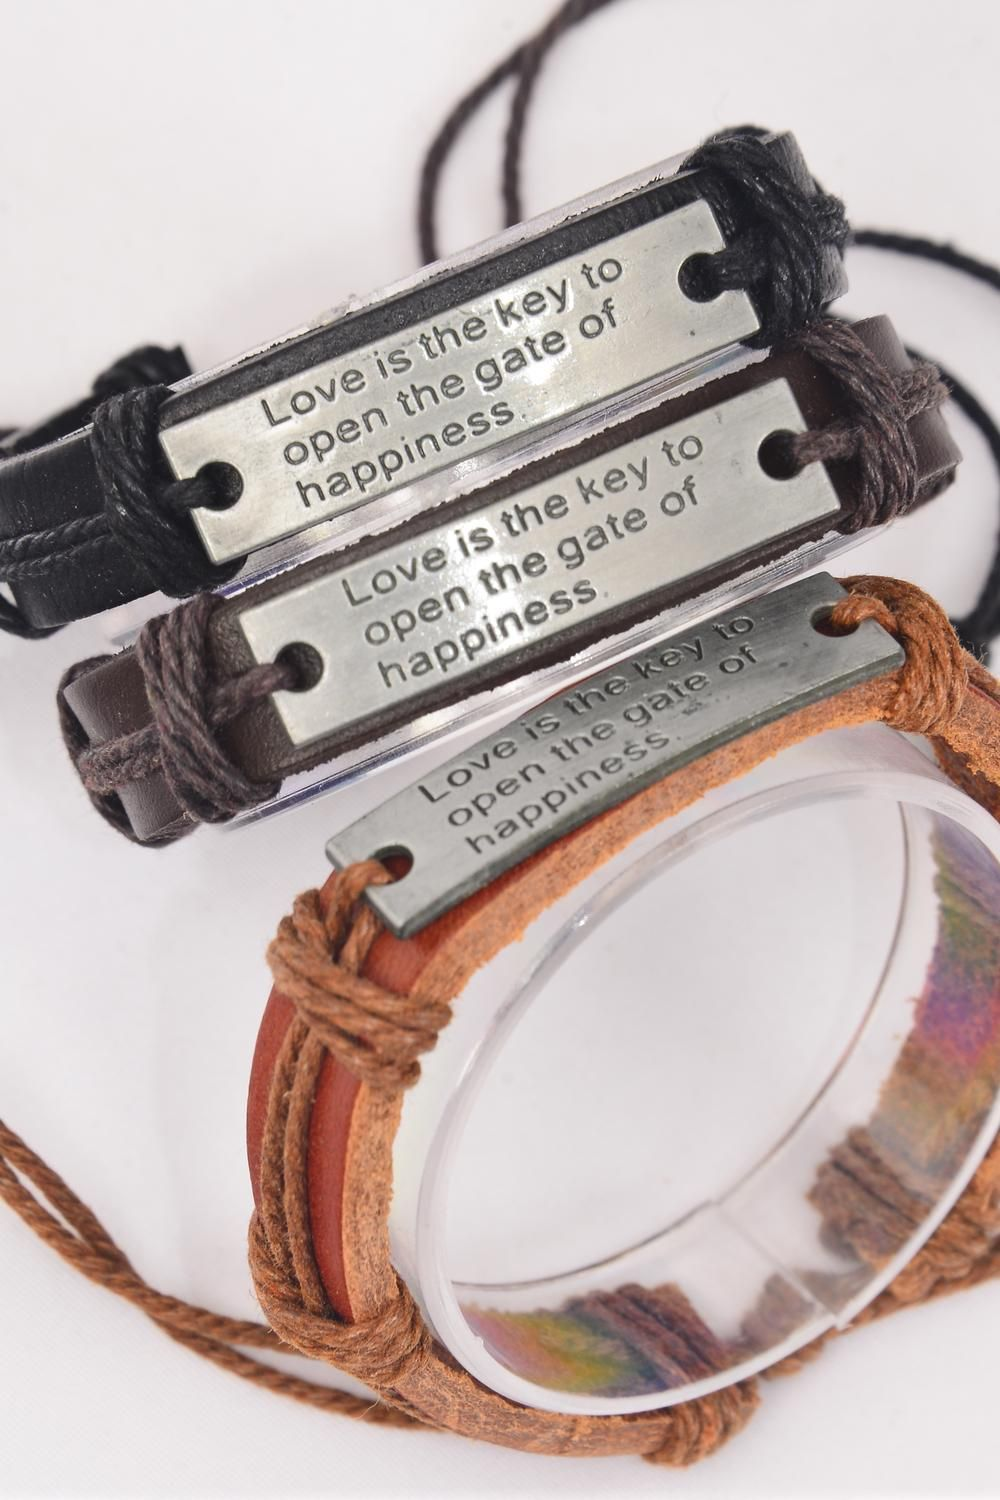 Bracelet Real Leather Band Silver  Love is the Key to Open The Gate of Happiness Silver/DZ **Silver** Unisex,Adjustable,4 of each Color Mix,Individual Hang tag & OPP Bag & UPC Code